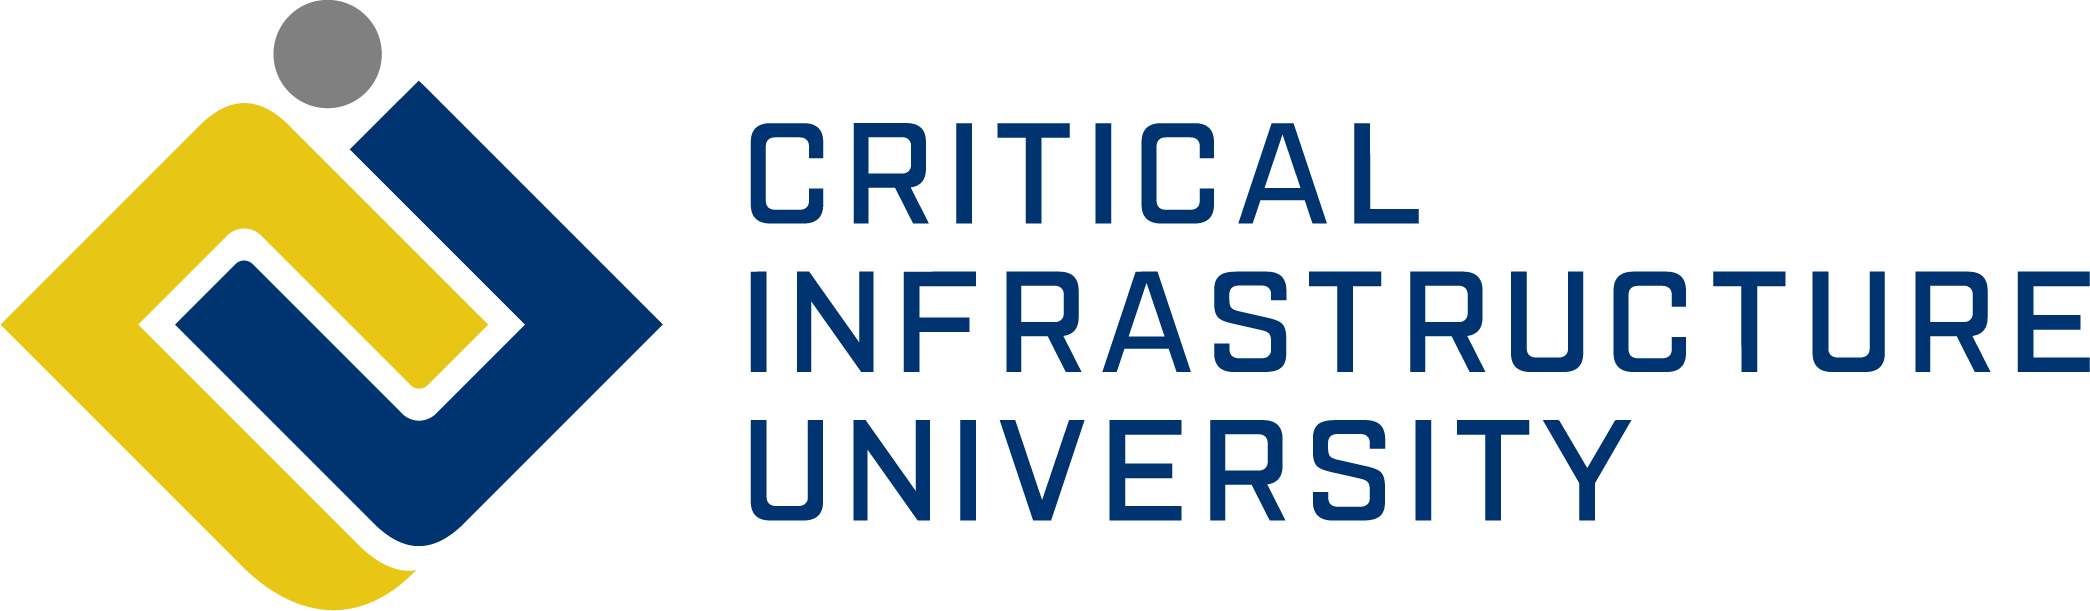 Critical Infrastructure University